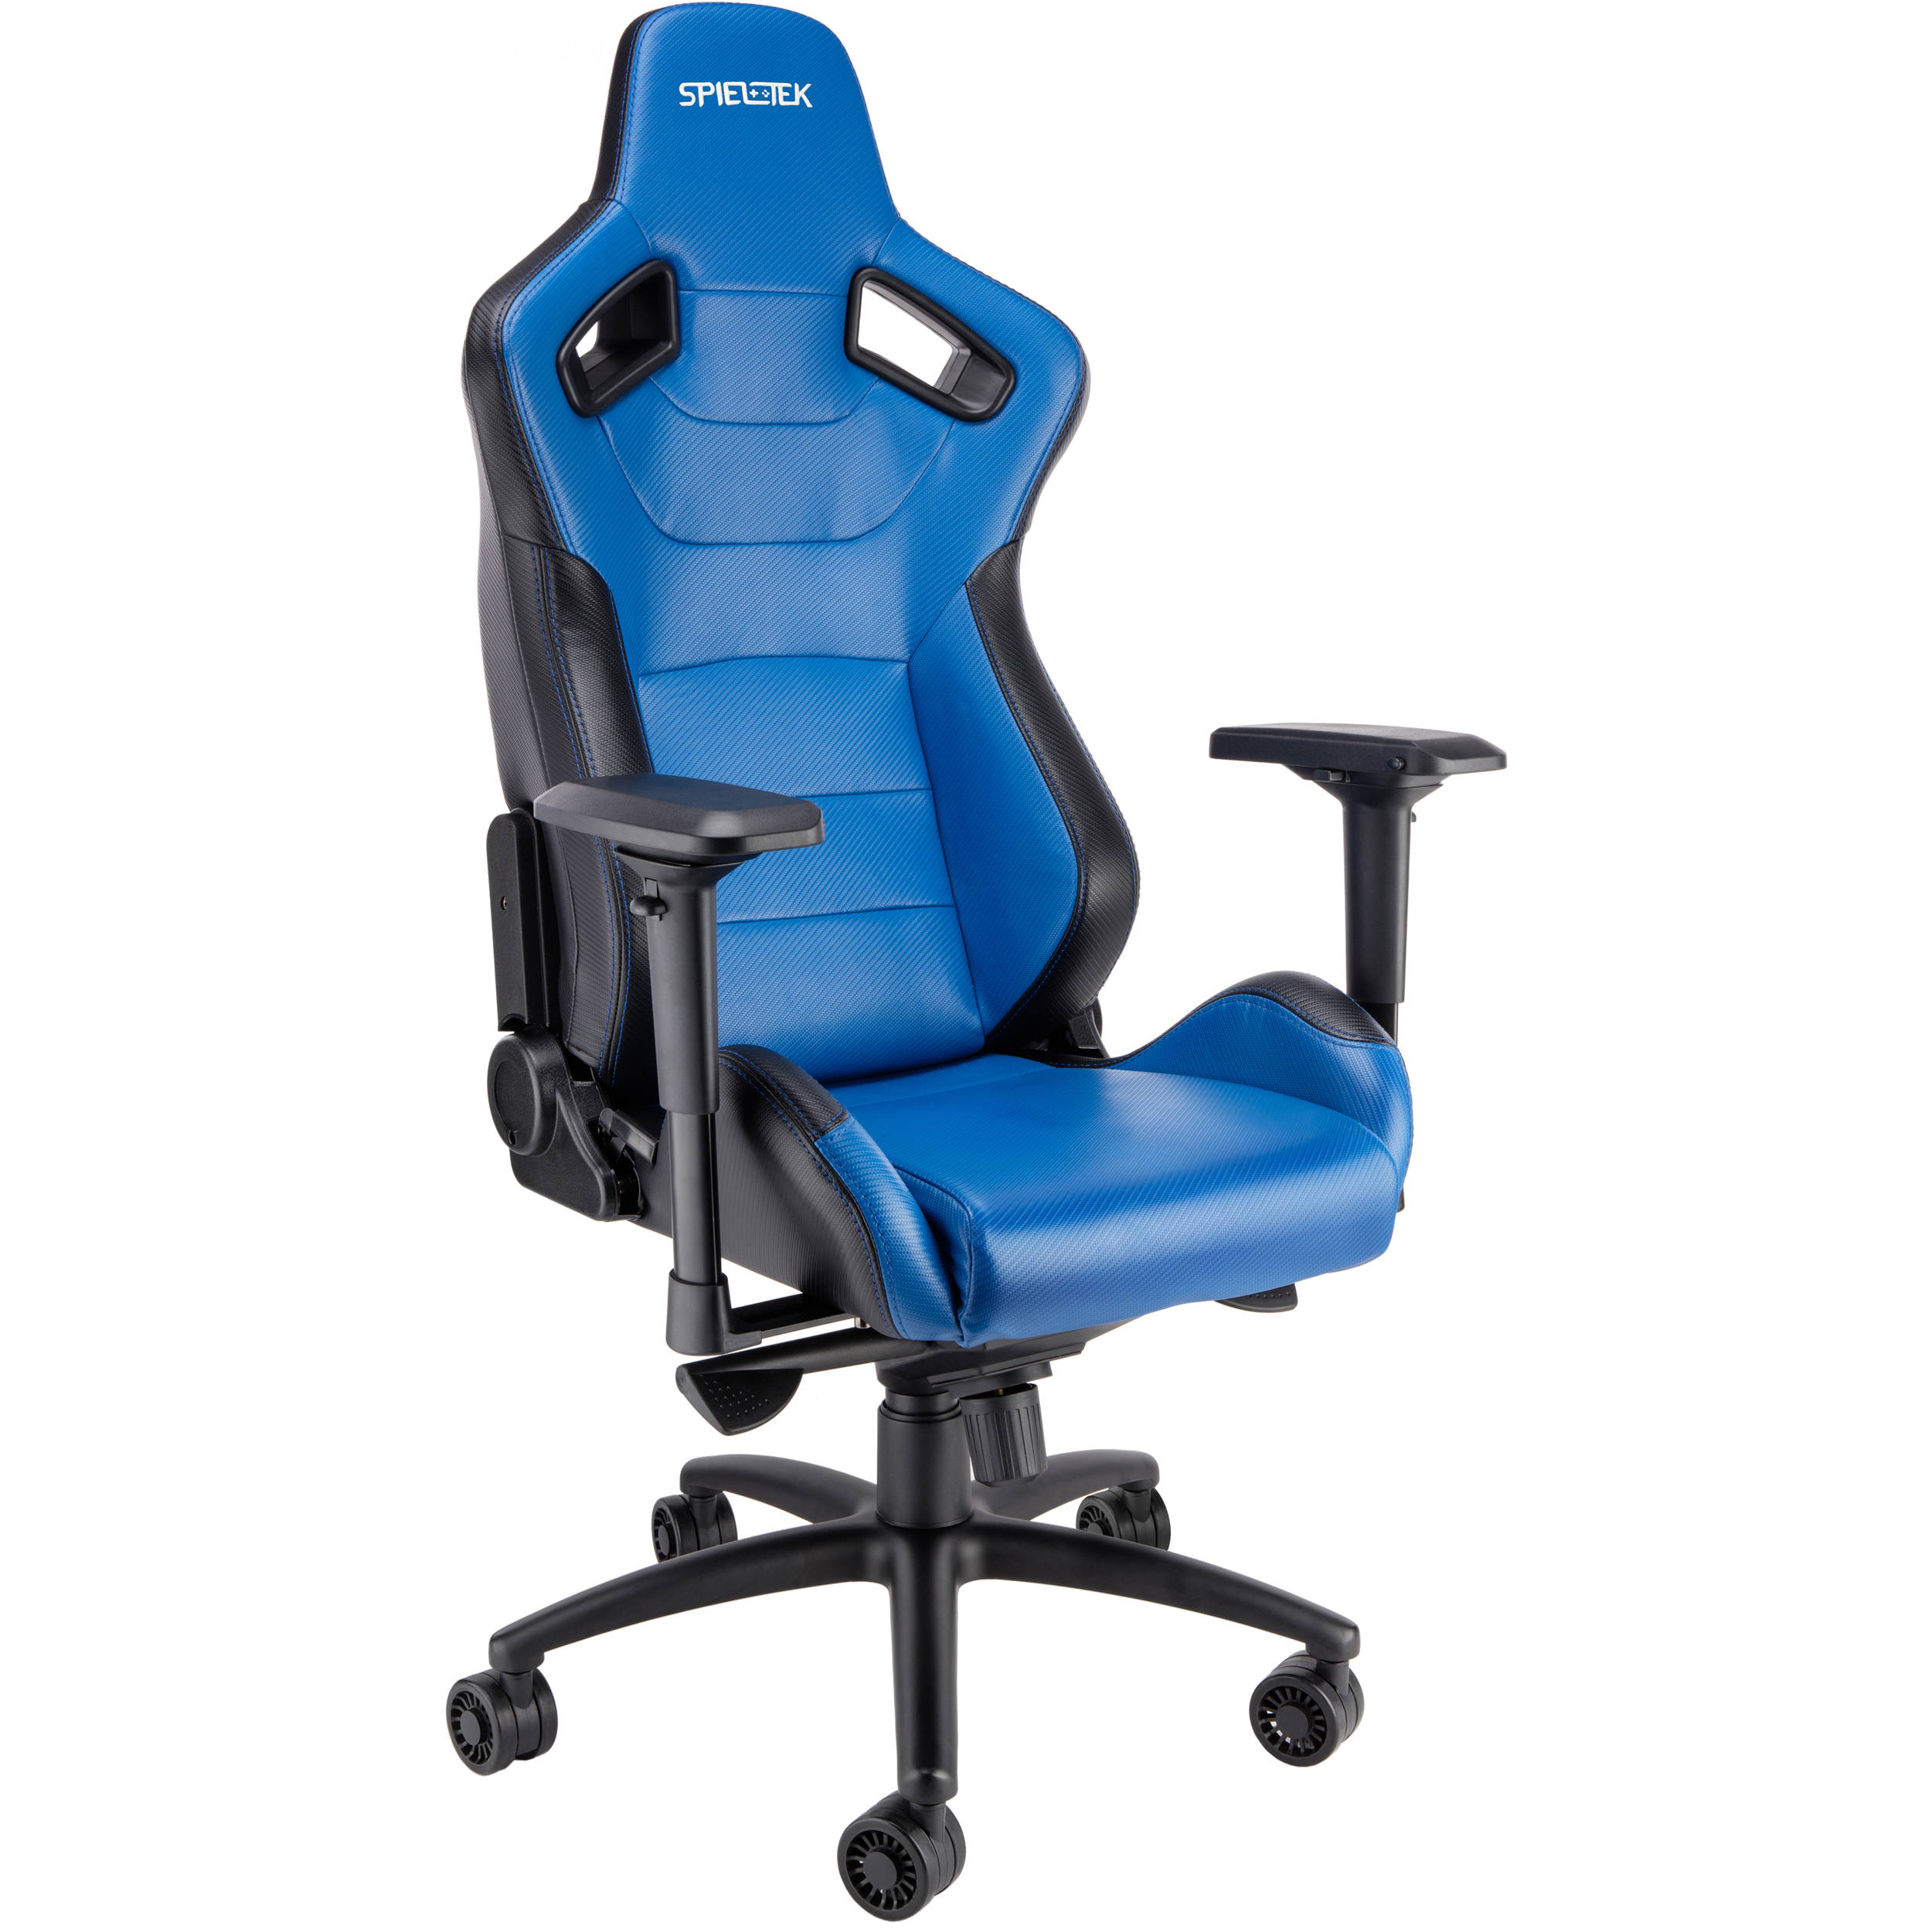 Spieltek Admiral Gaming Chair Blue GC 321 BBL B&H Video